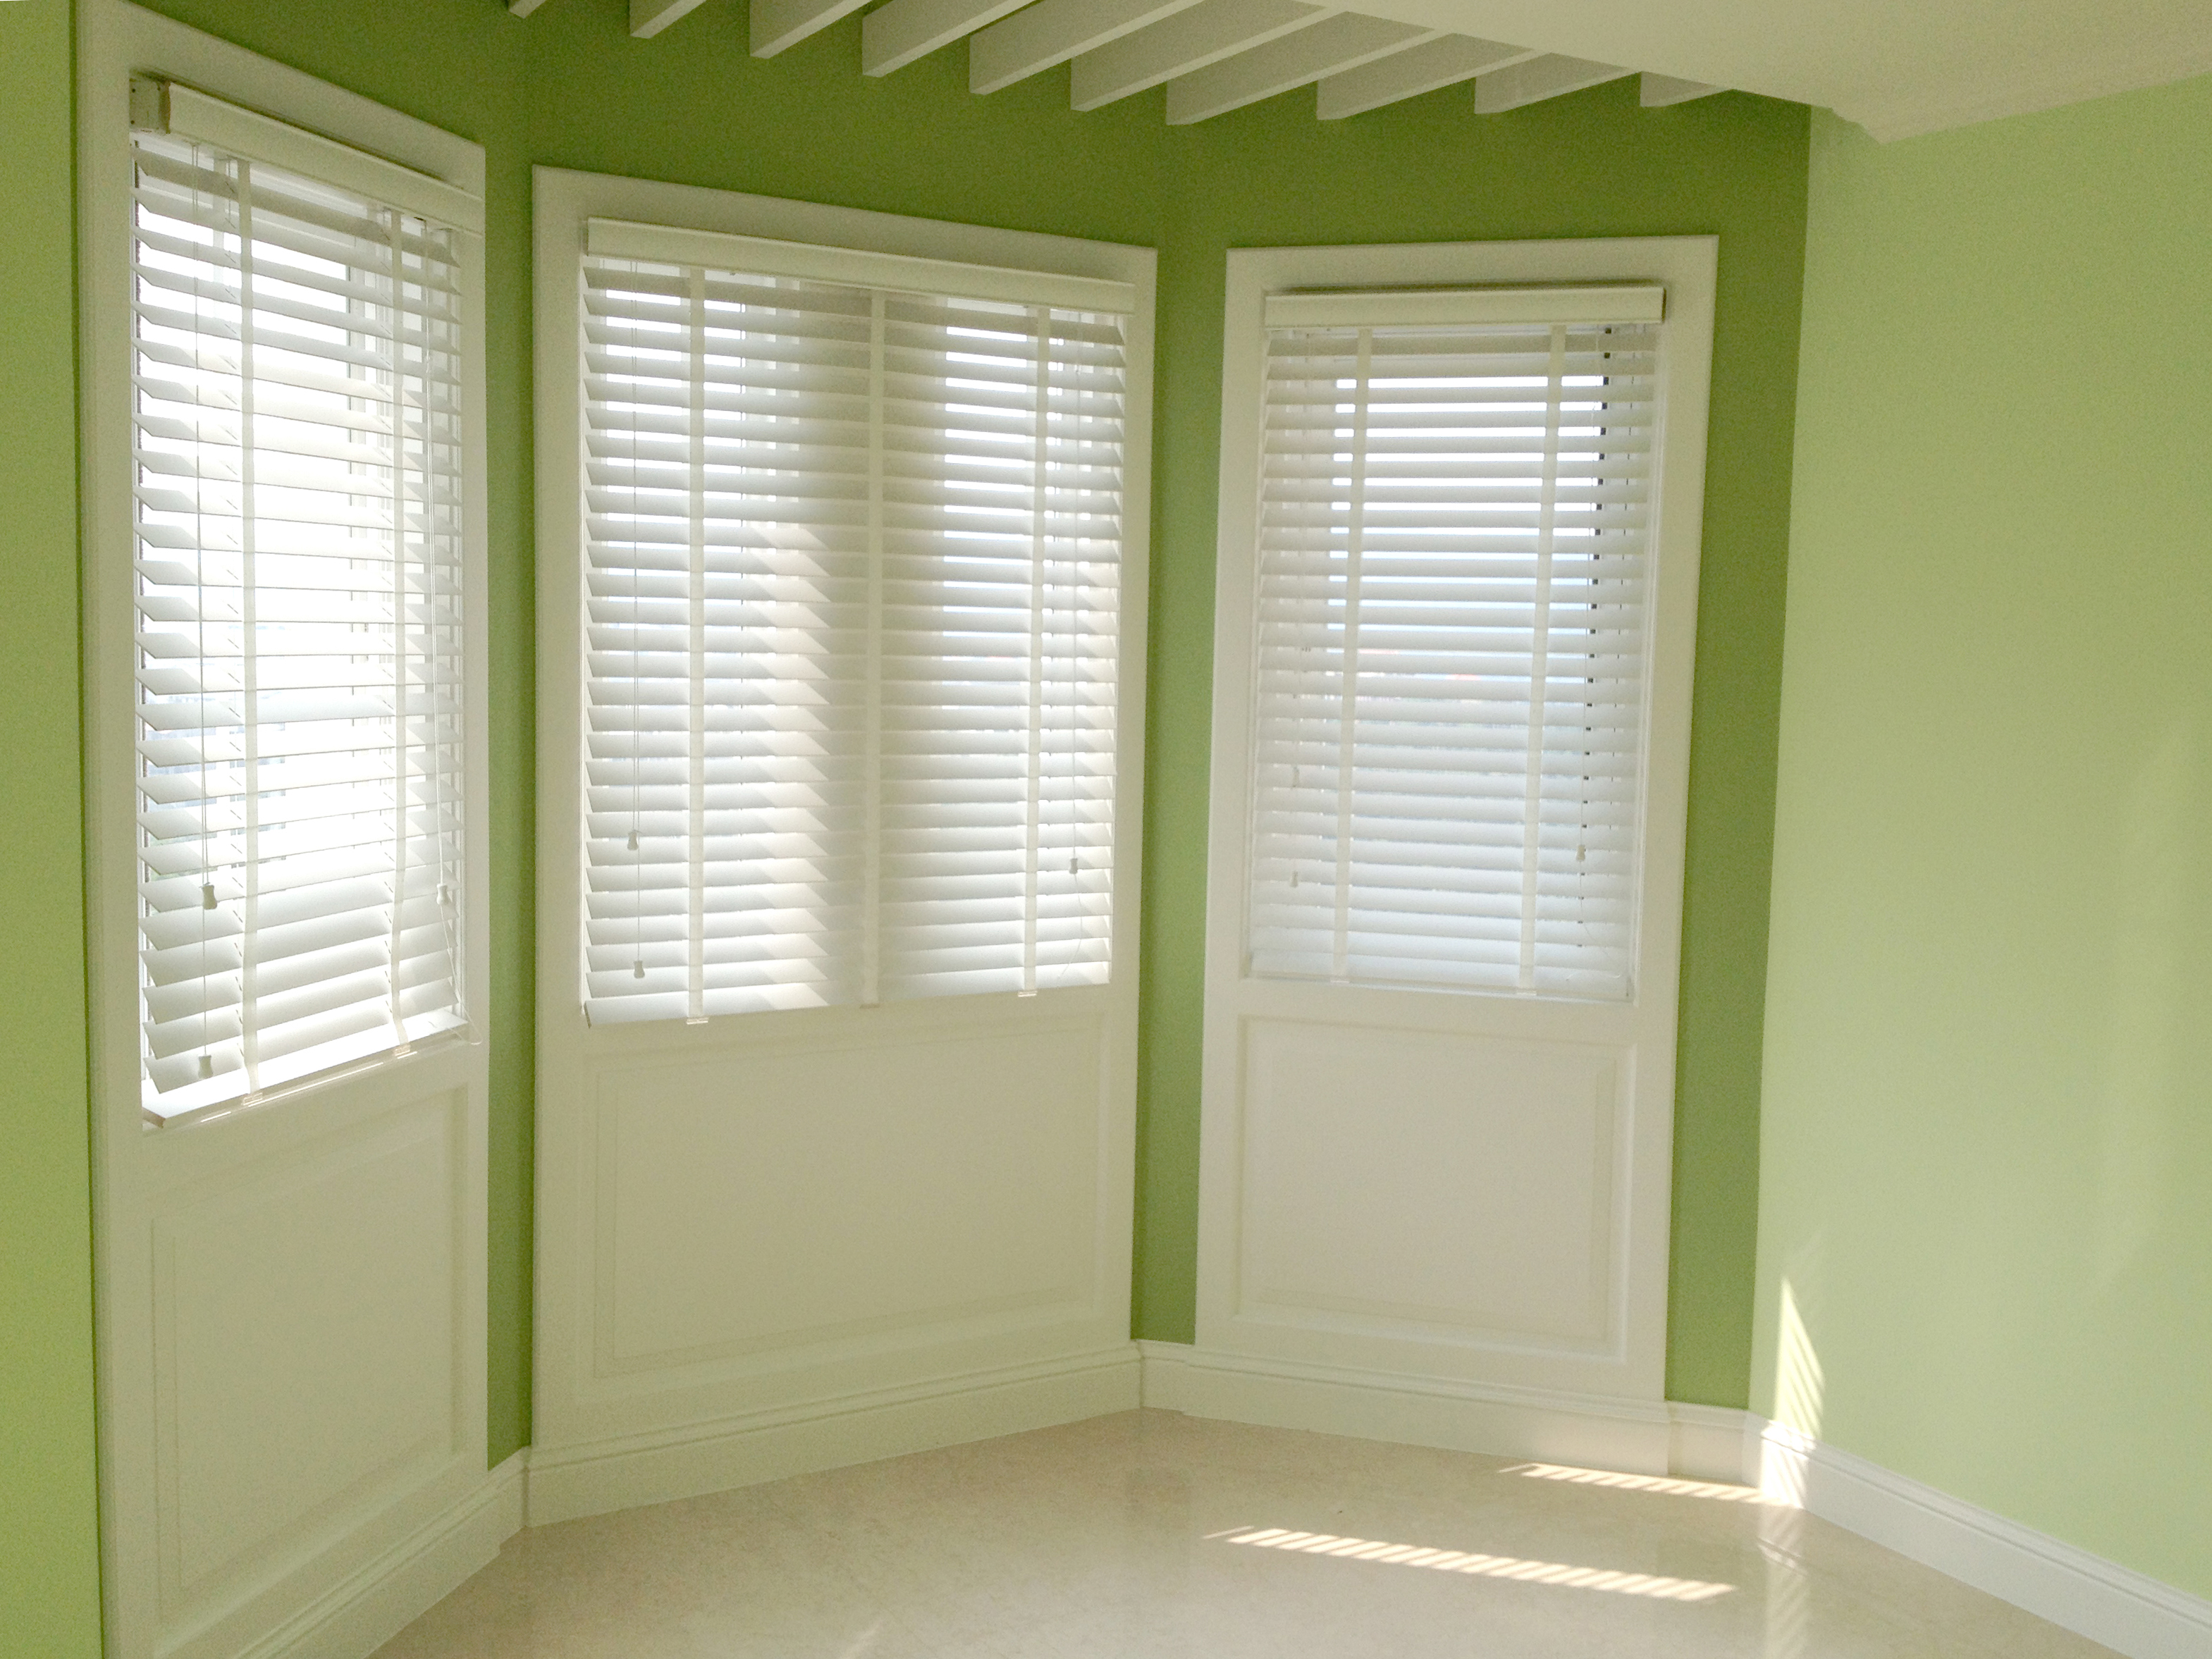 木百葉簾 彩色牆 美式風 Venetian Blinds Interior